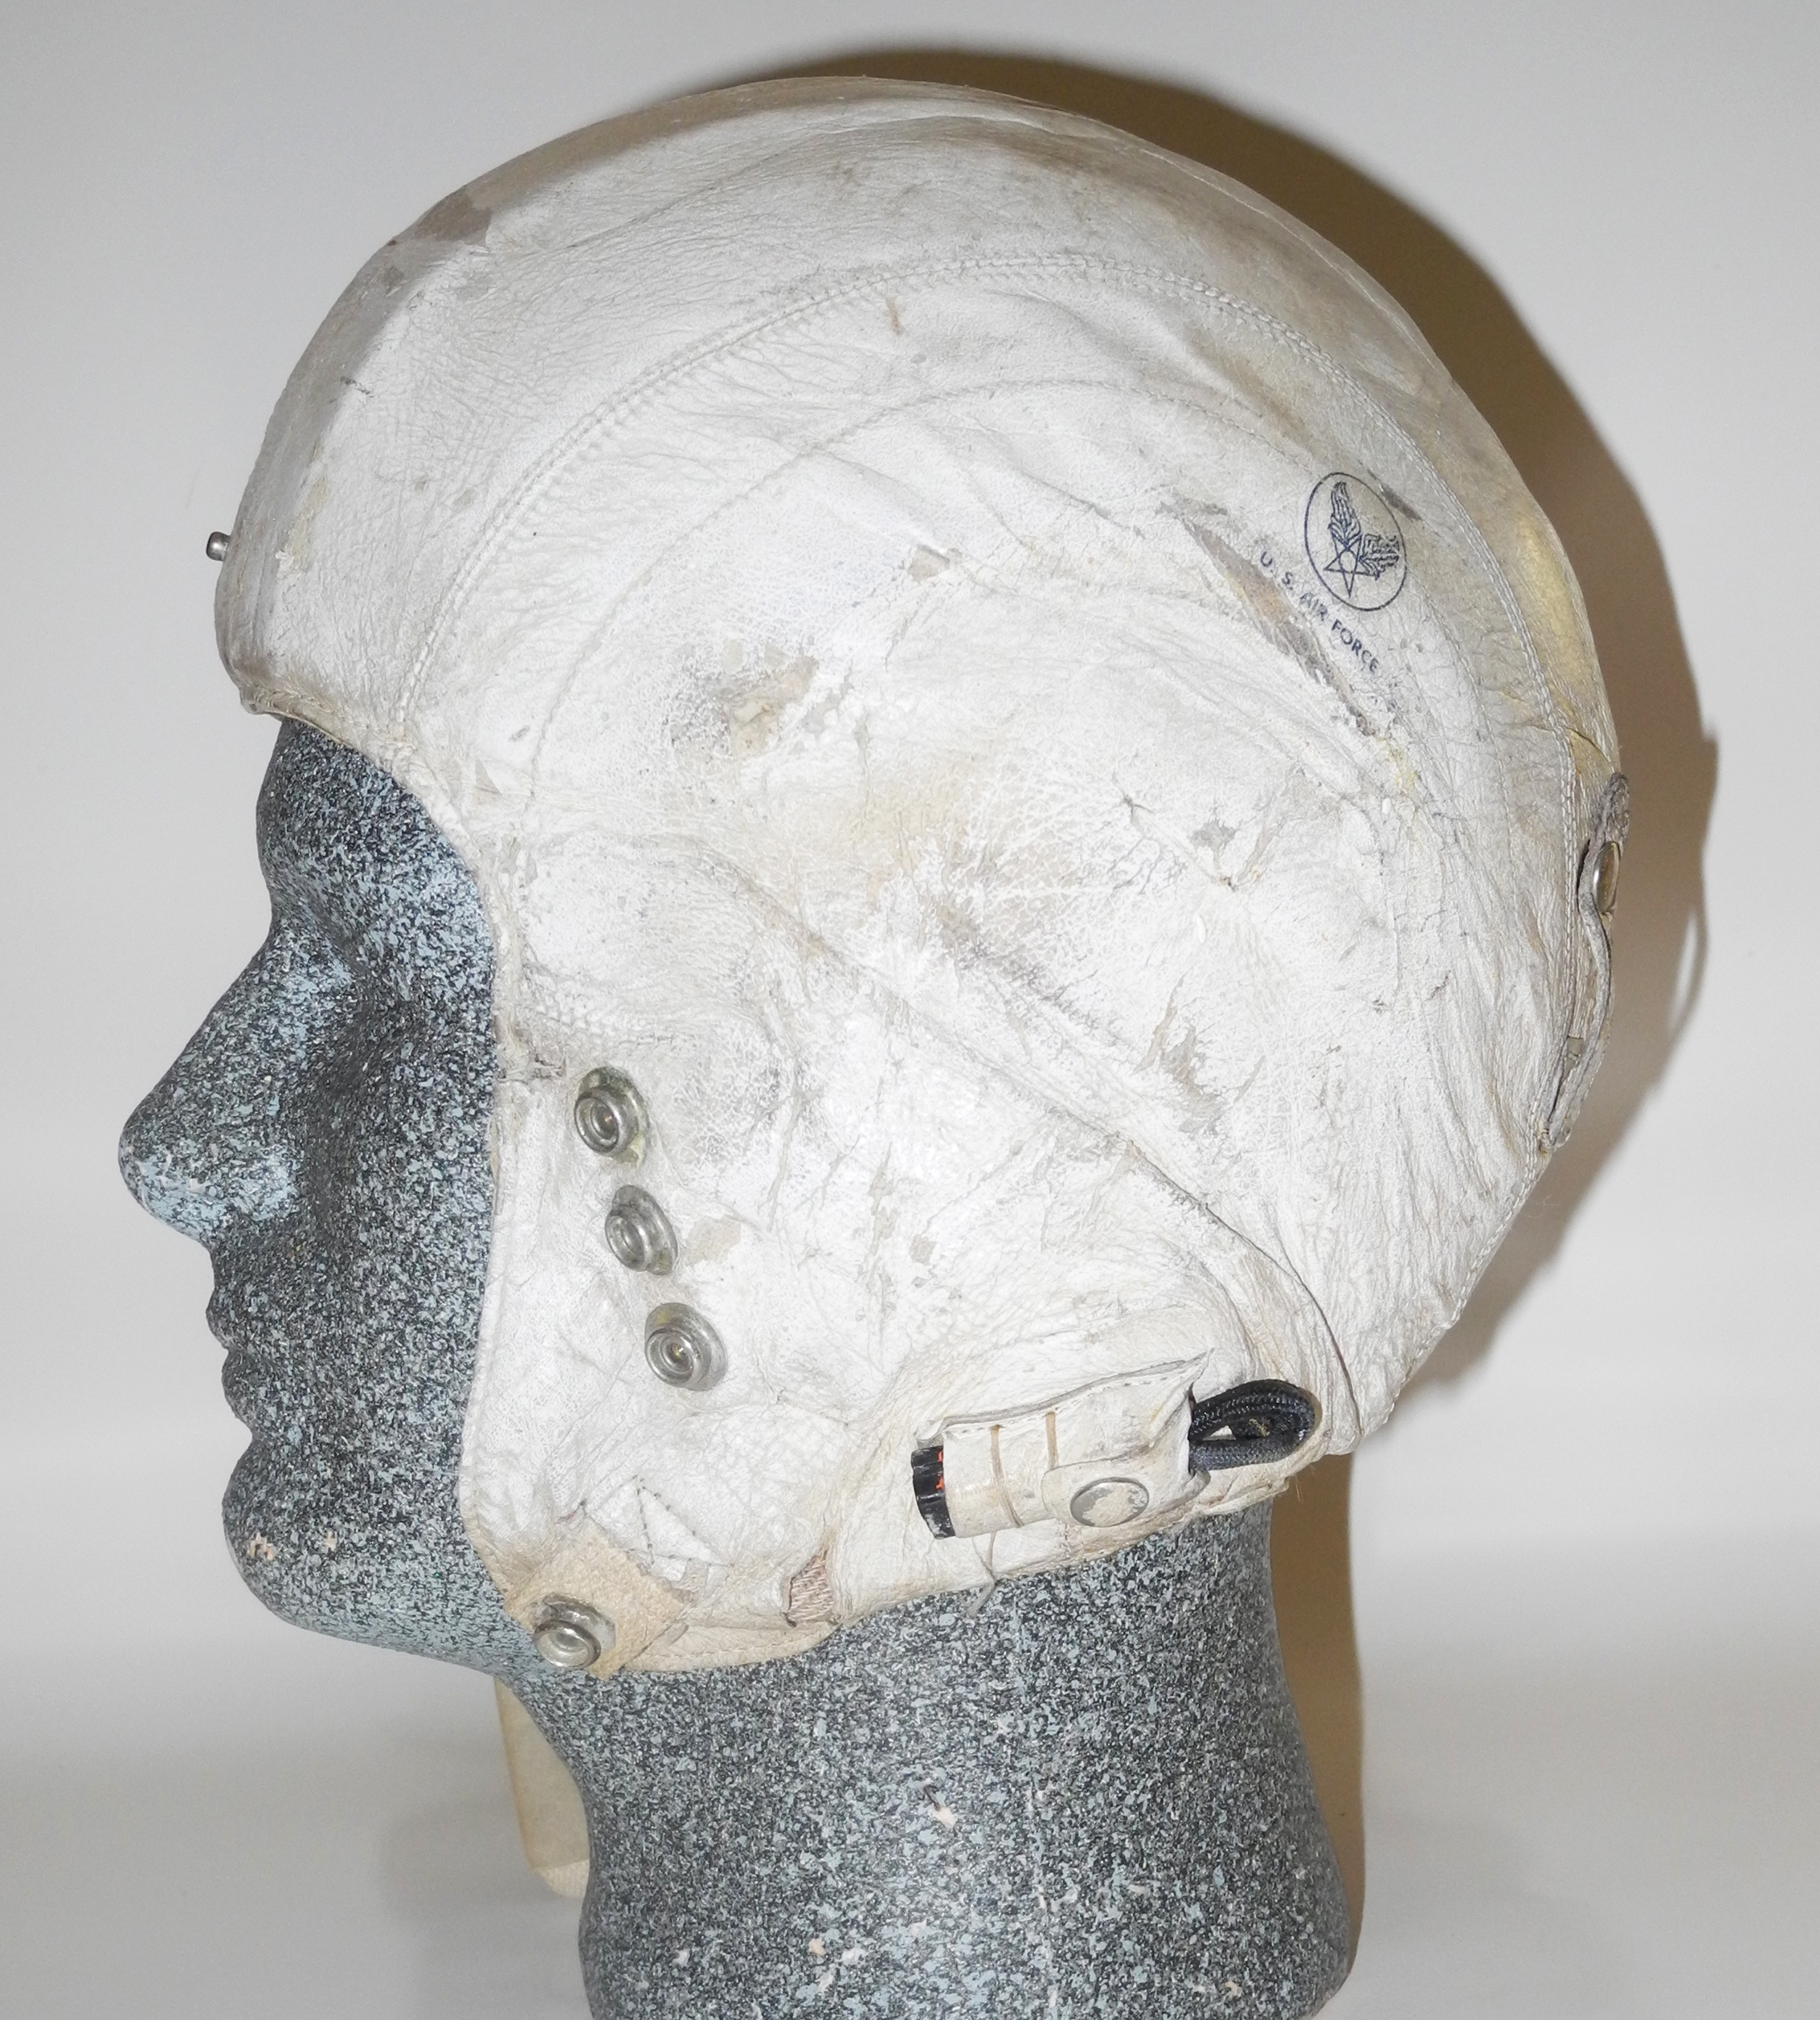 USAF MB-3 flying helmet